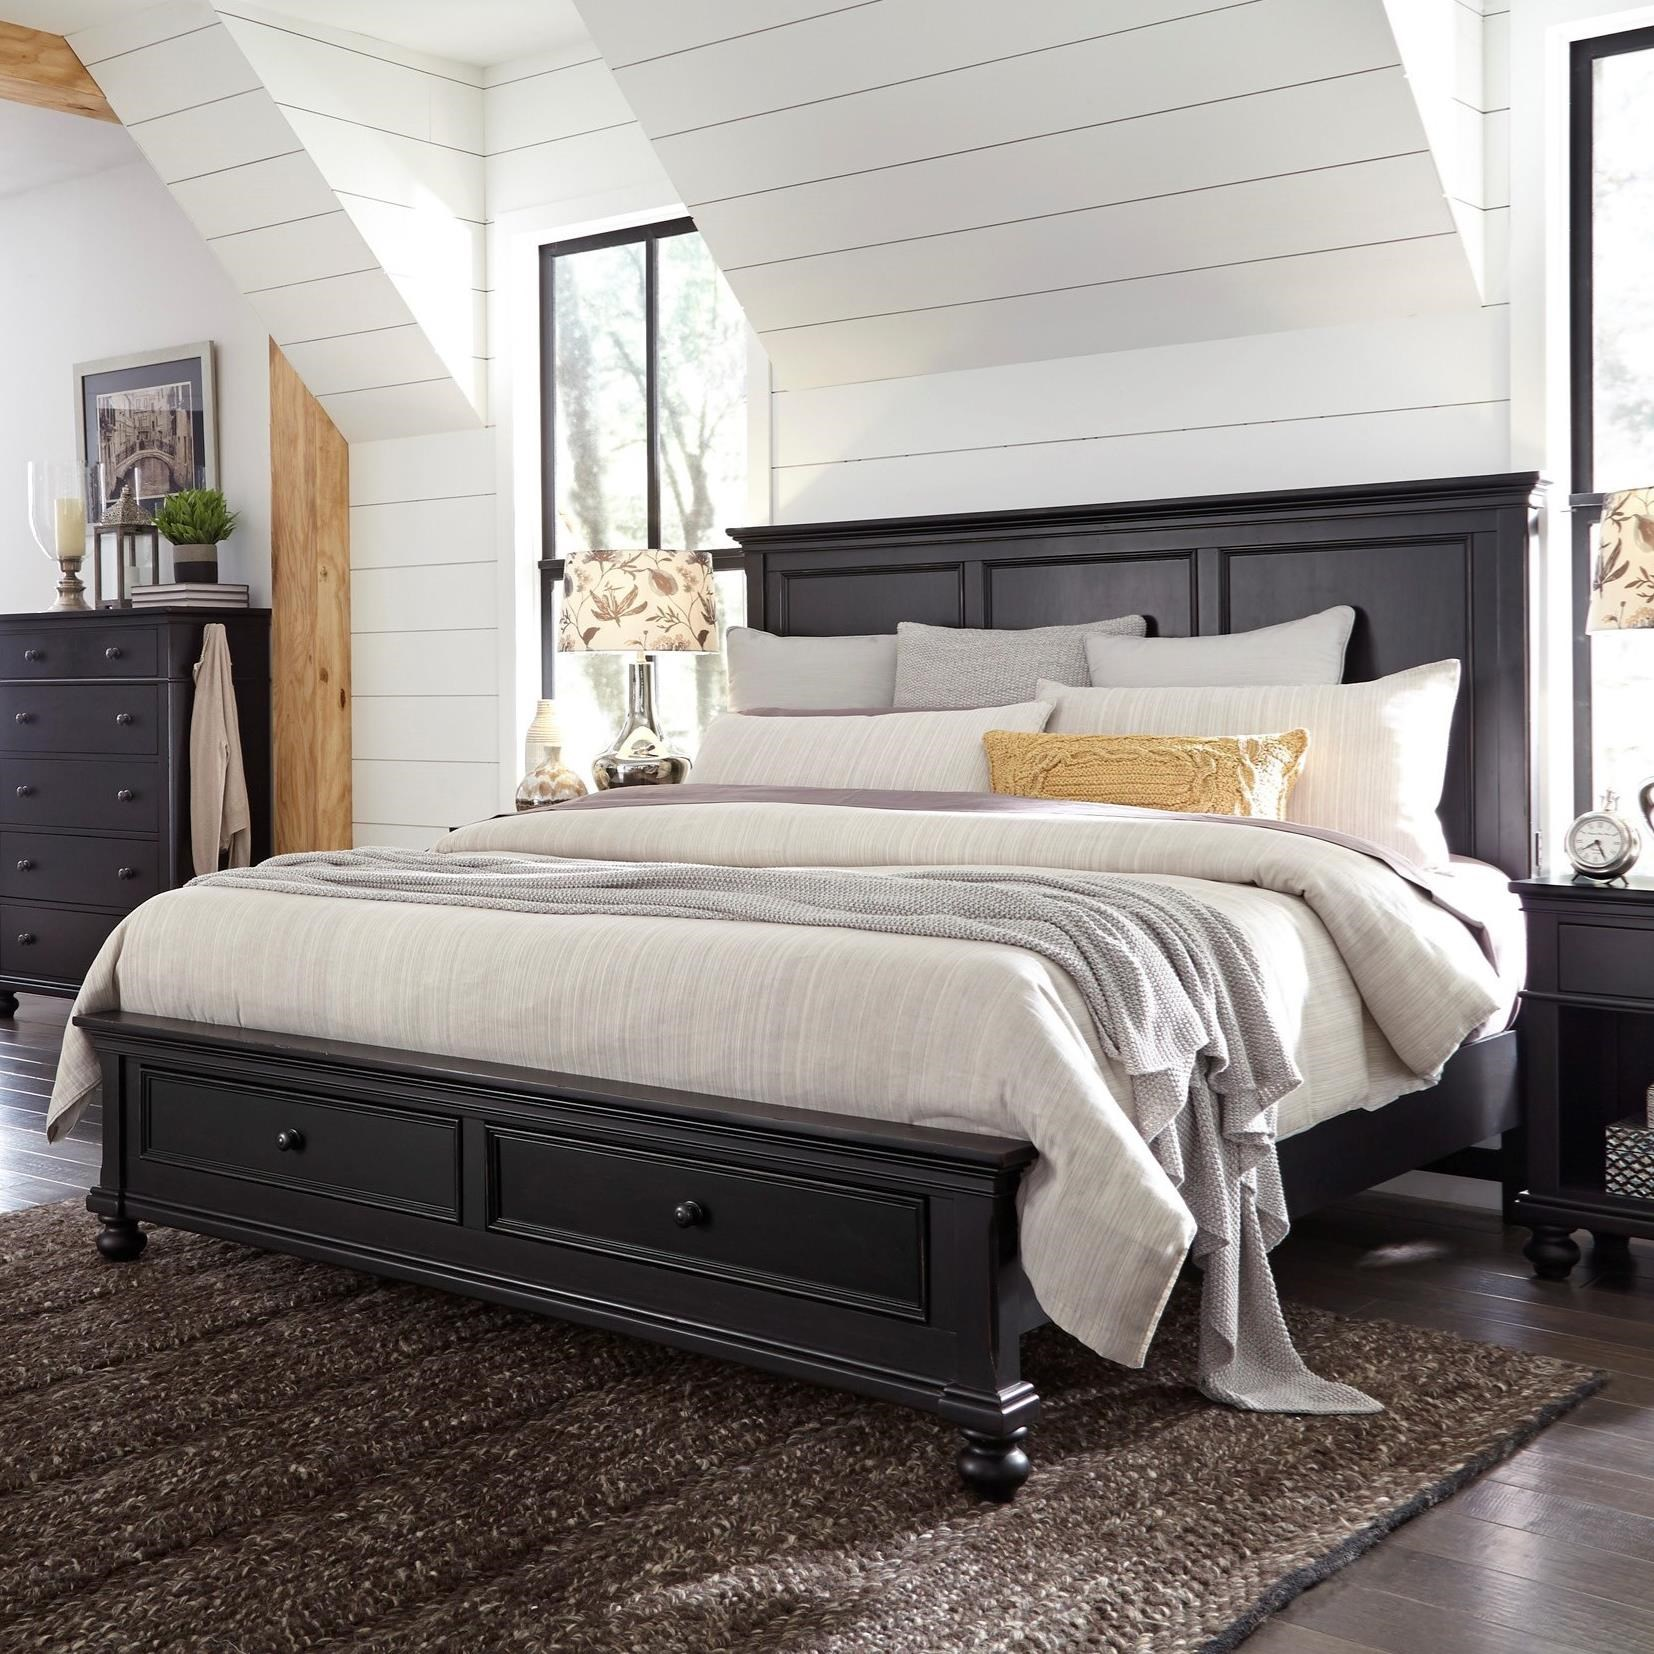 Oakford Oakford Queen Panel Storage Bed by Aspenhome at Morris Home